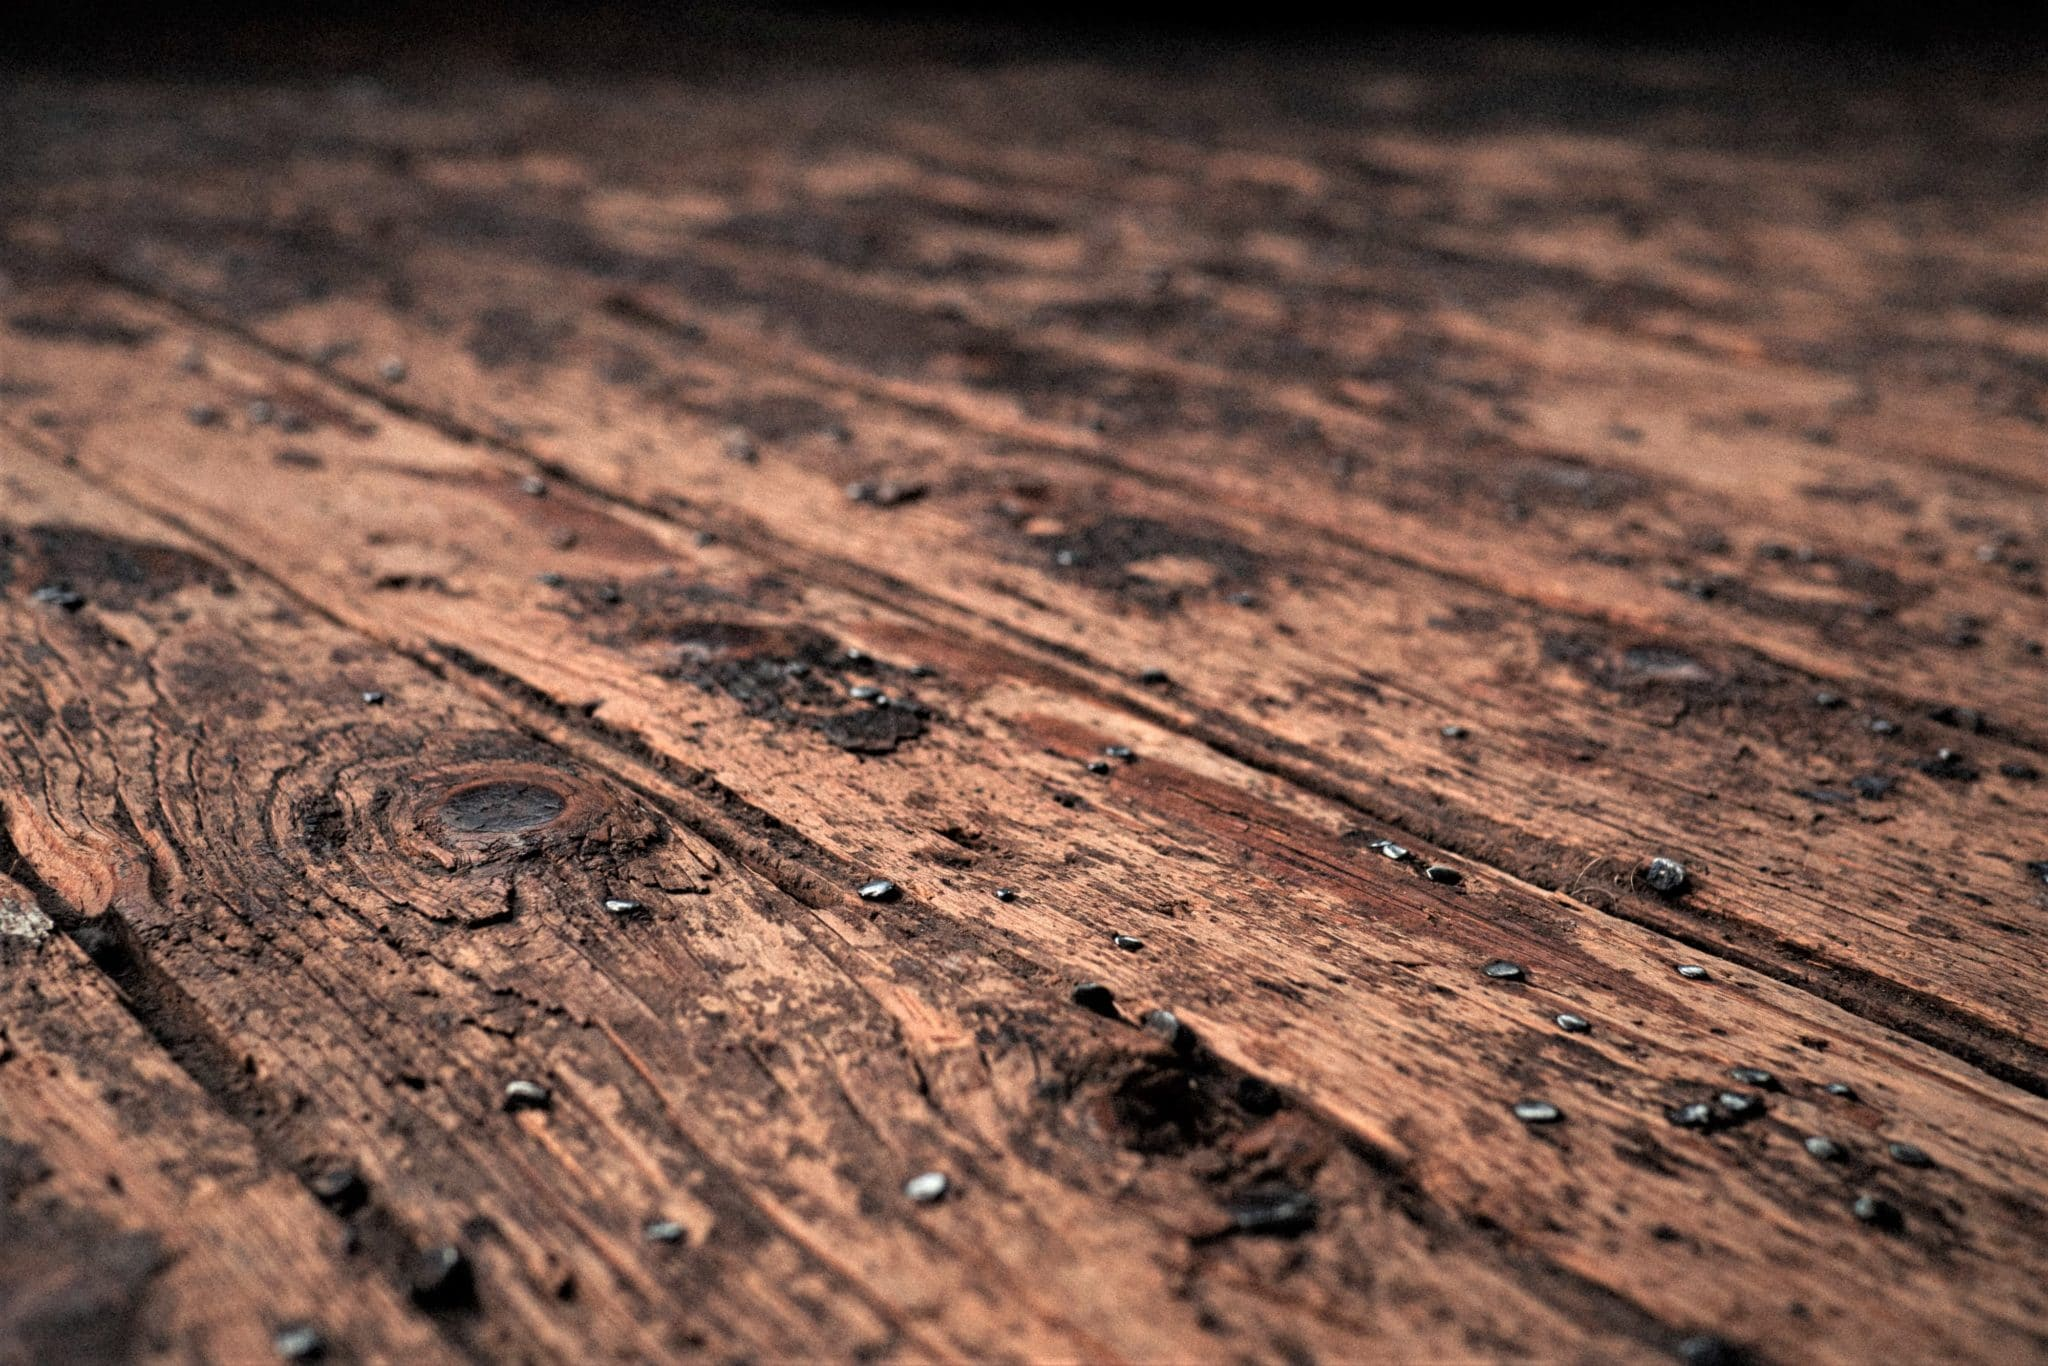 old floorboard, attic inspection safety